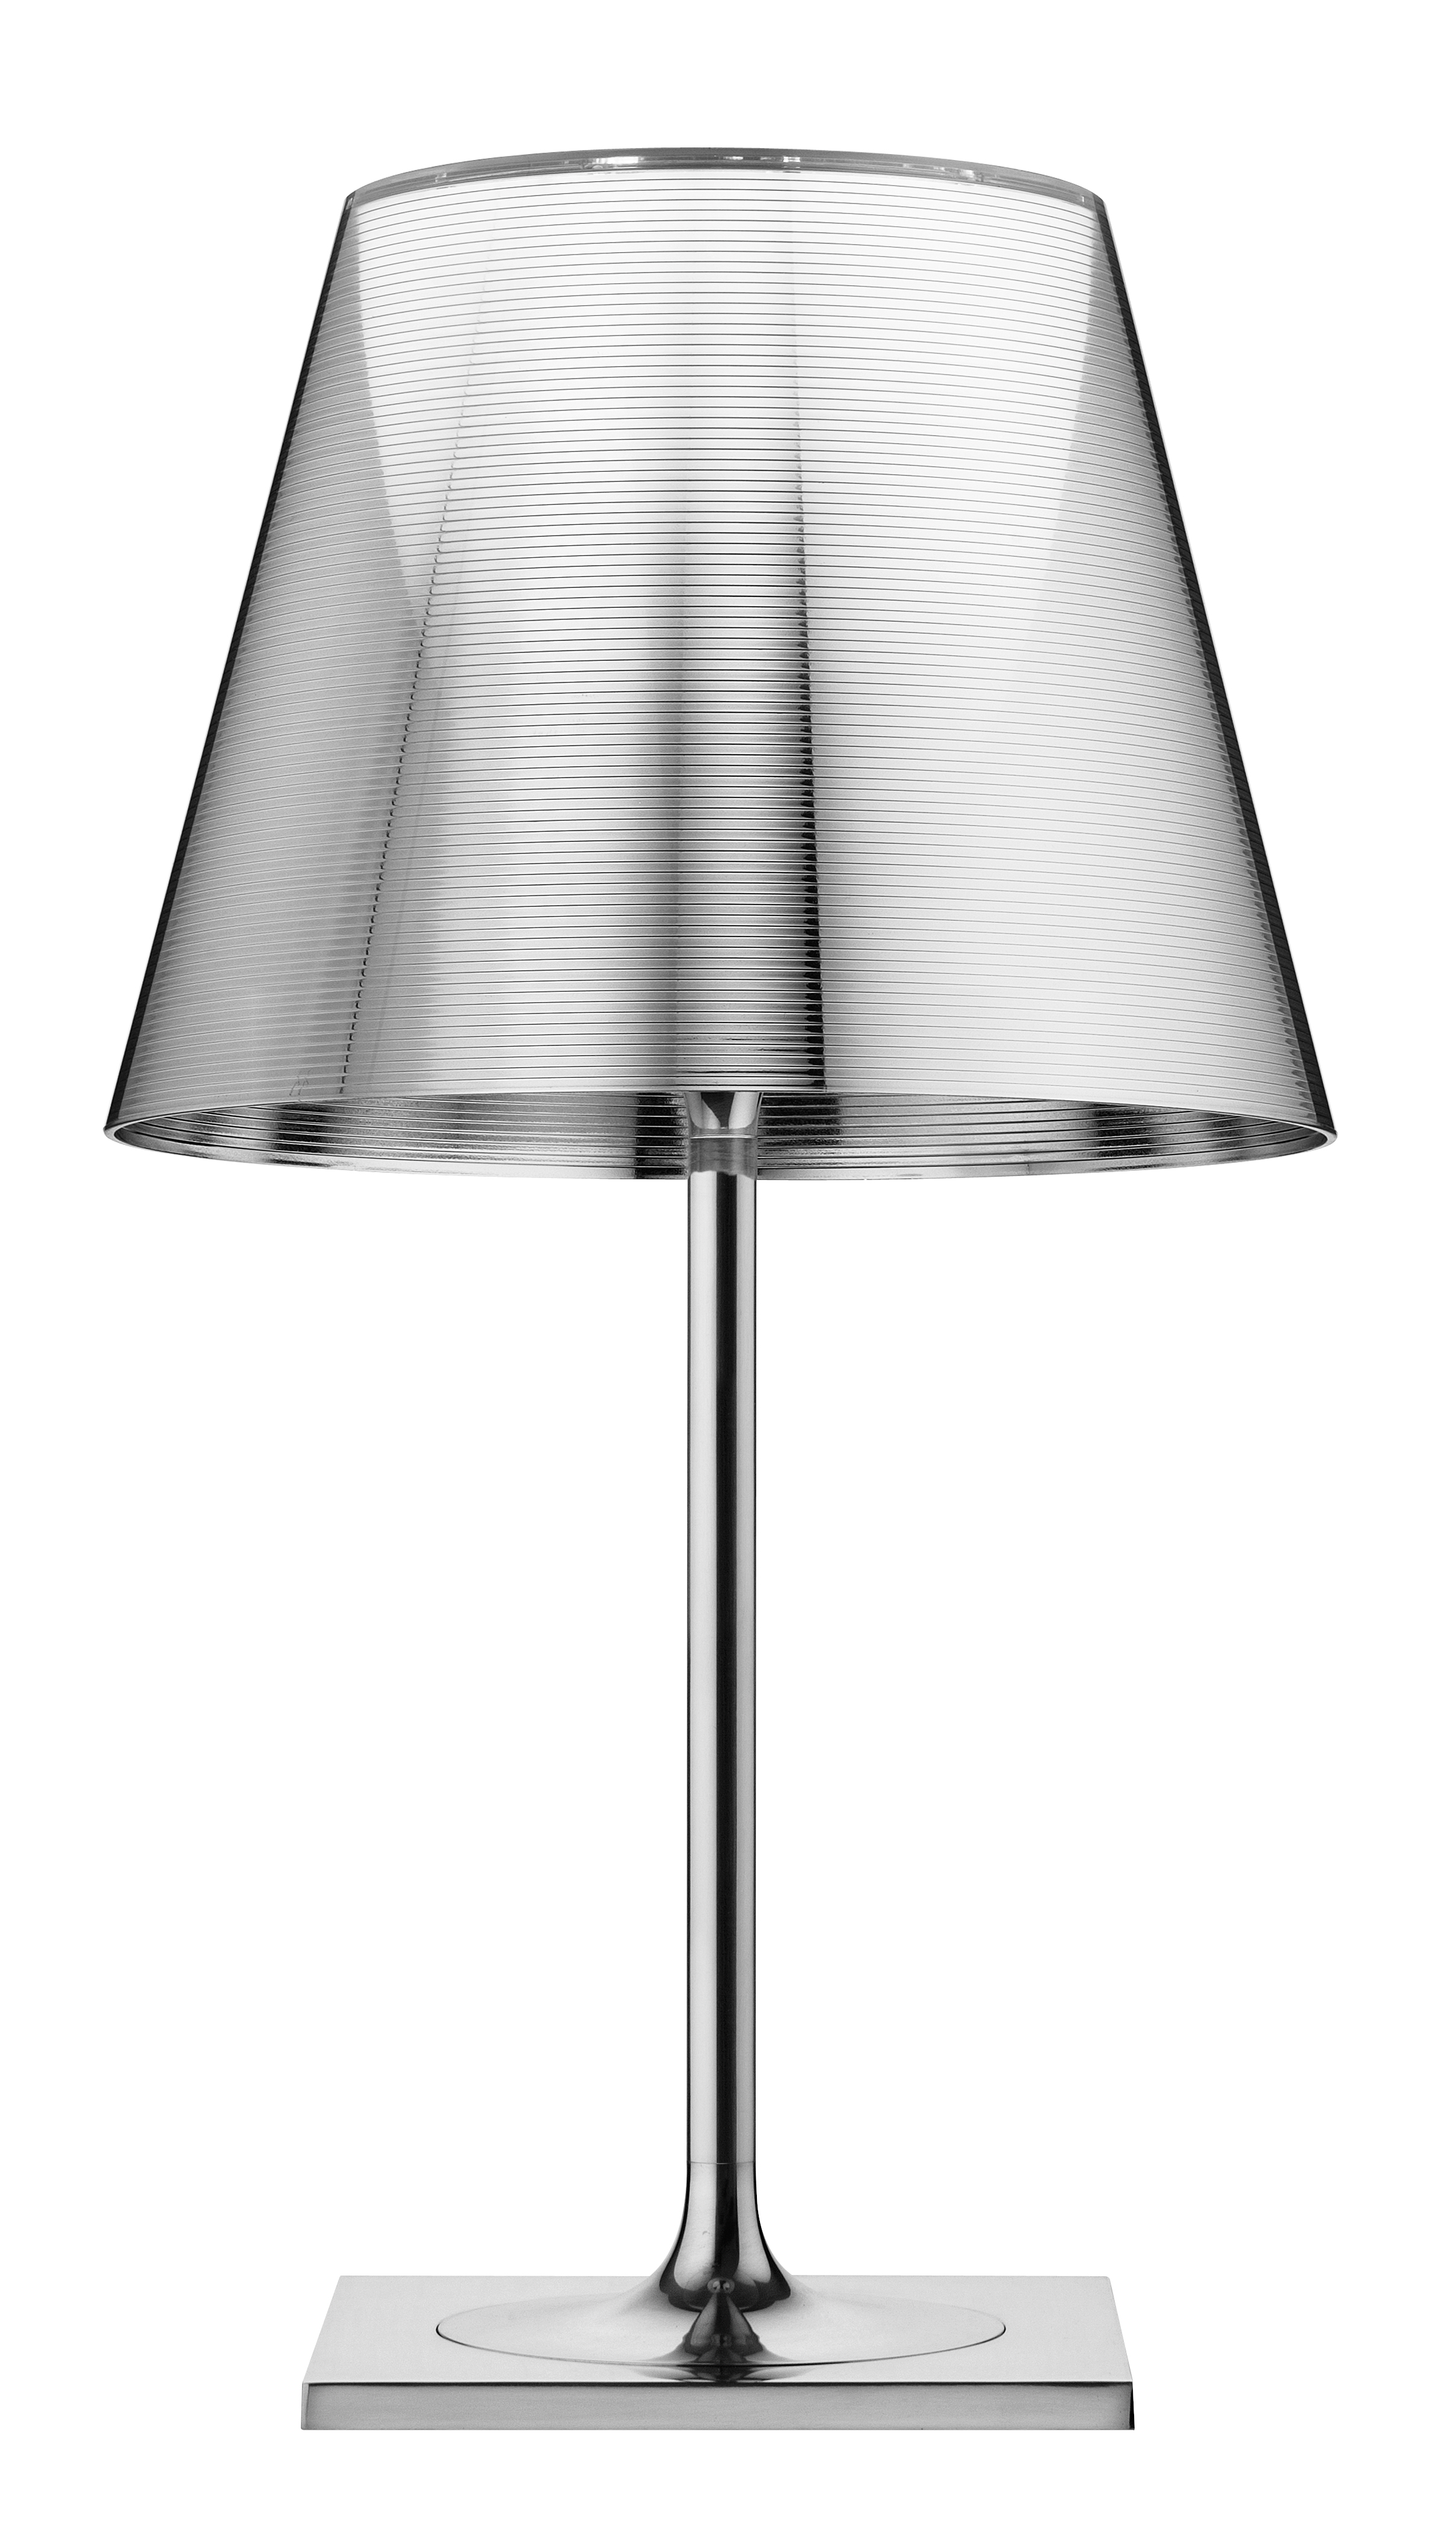 Ktribe t1 dimmer table lamp include shade flos ktribe t1 dimmer table lamp include shade mozeypictures Images